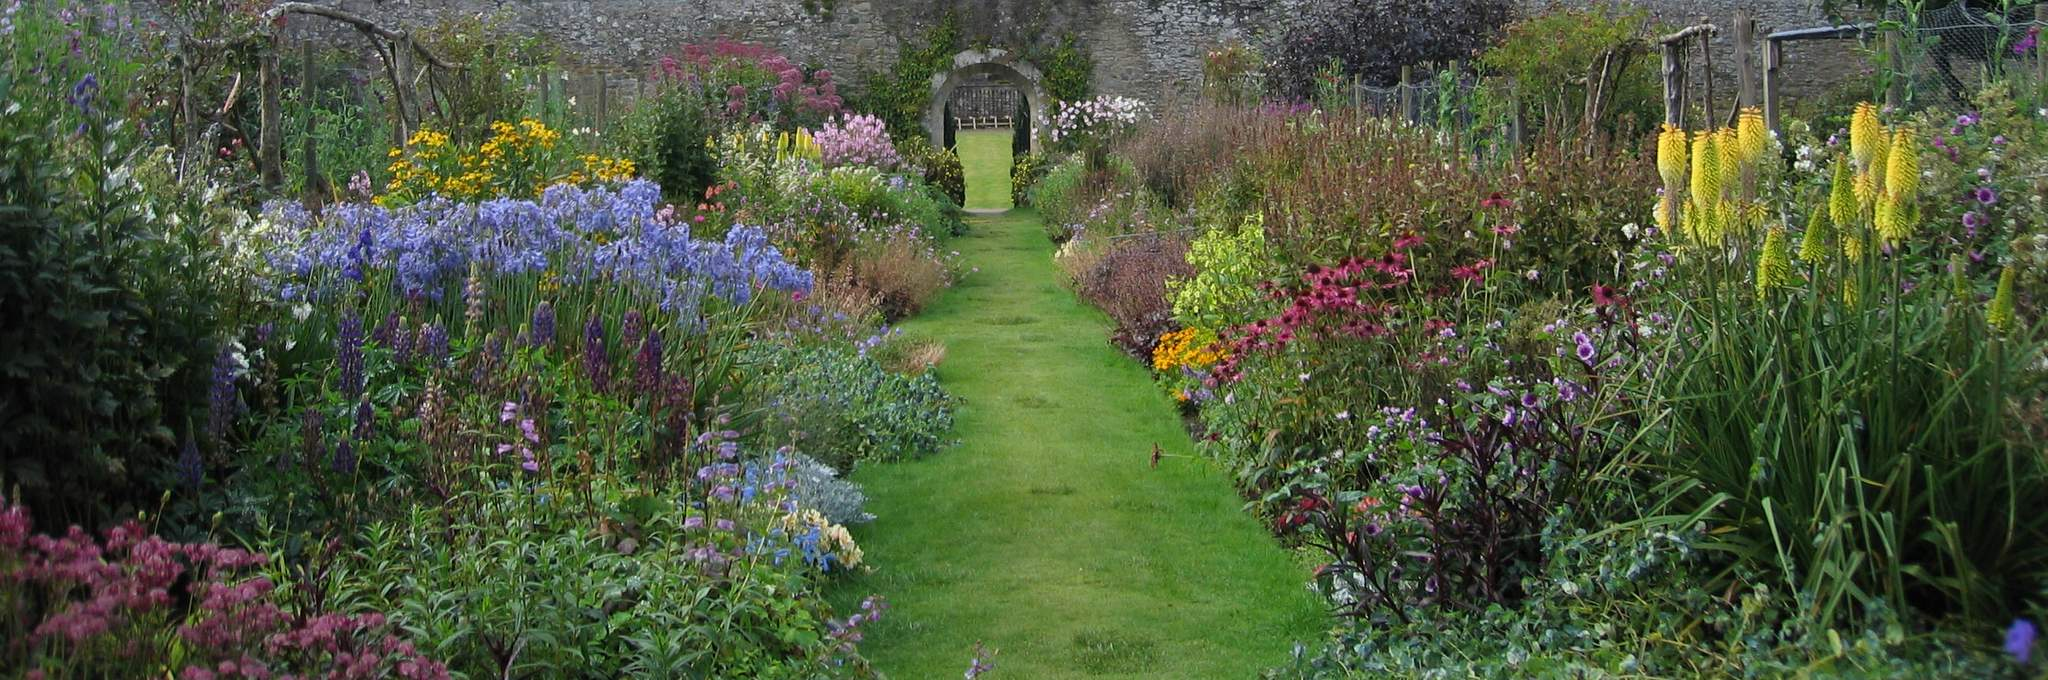 Abbotsford House gardens in The Scottish Borders